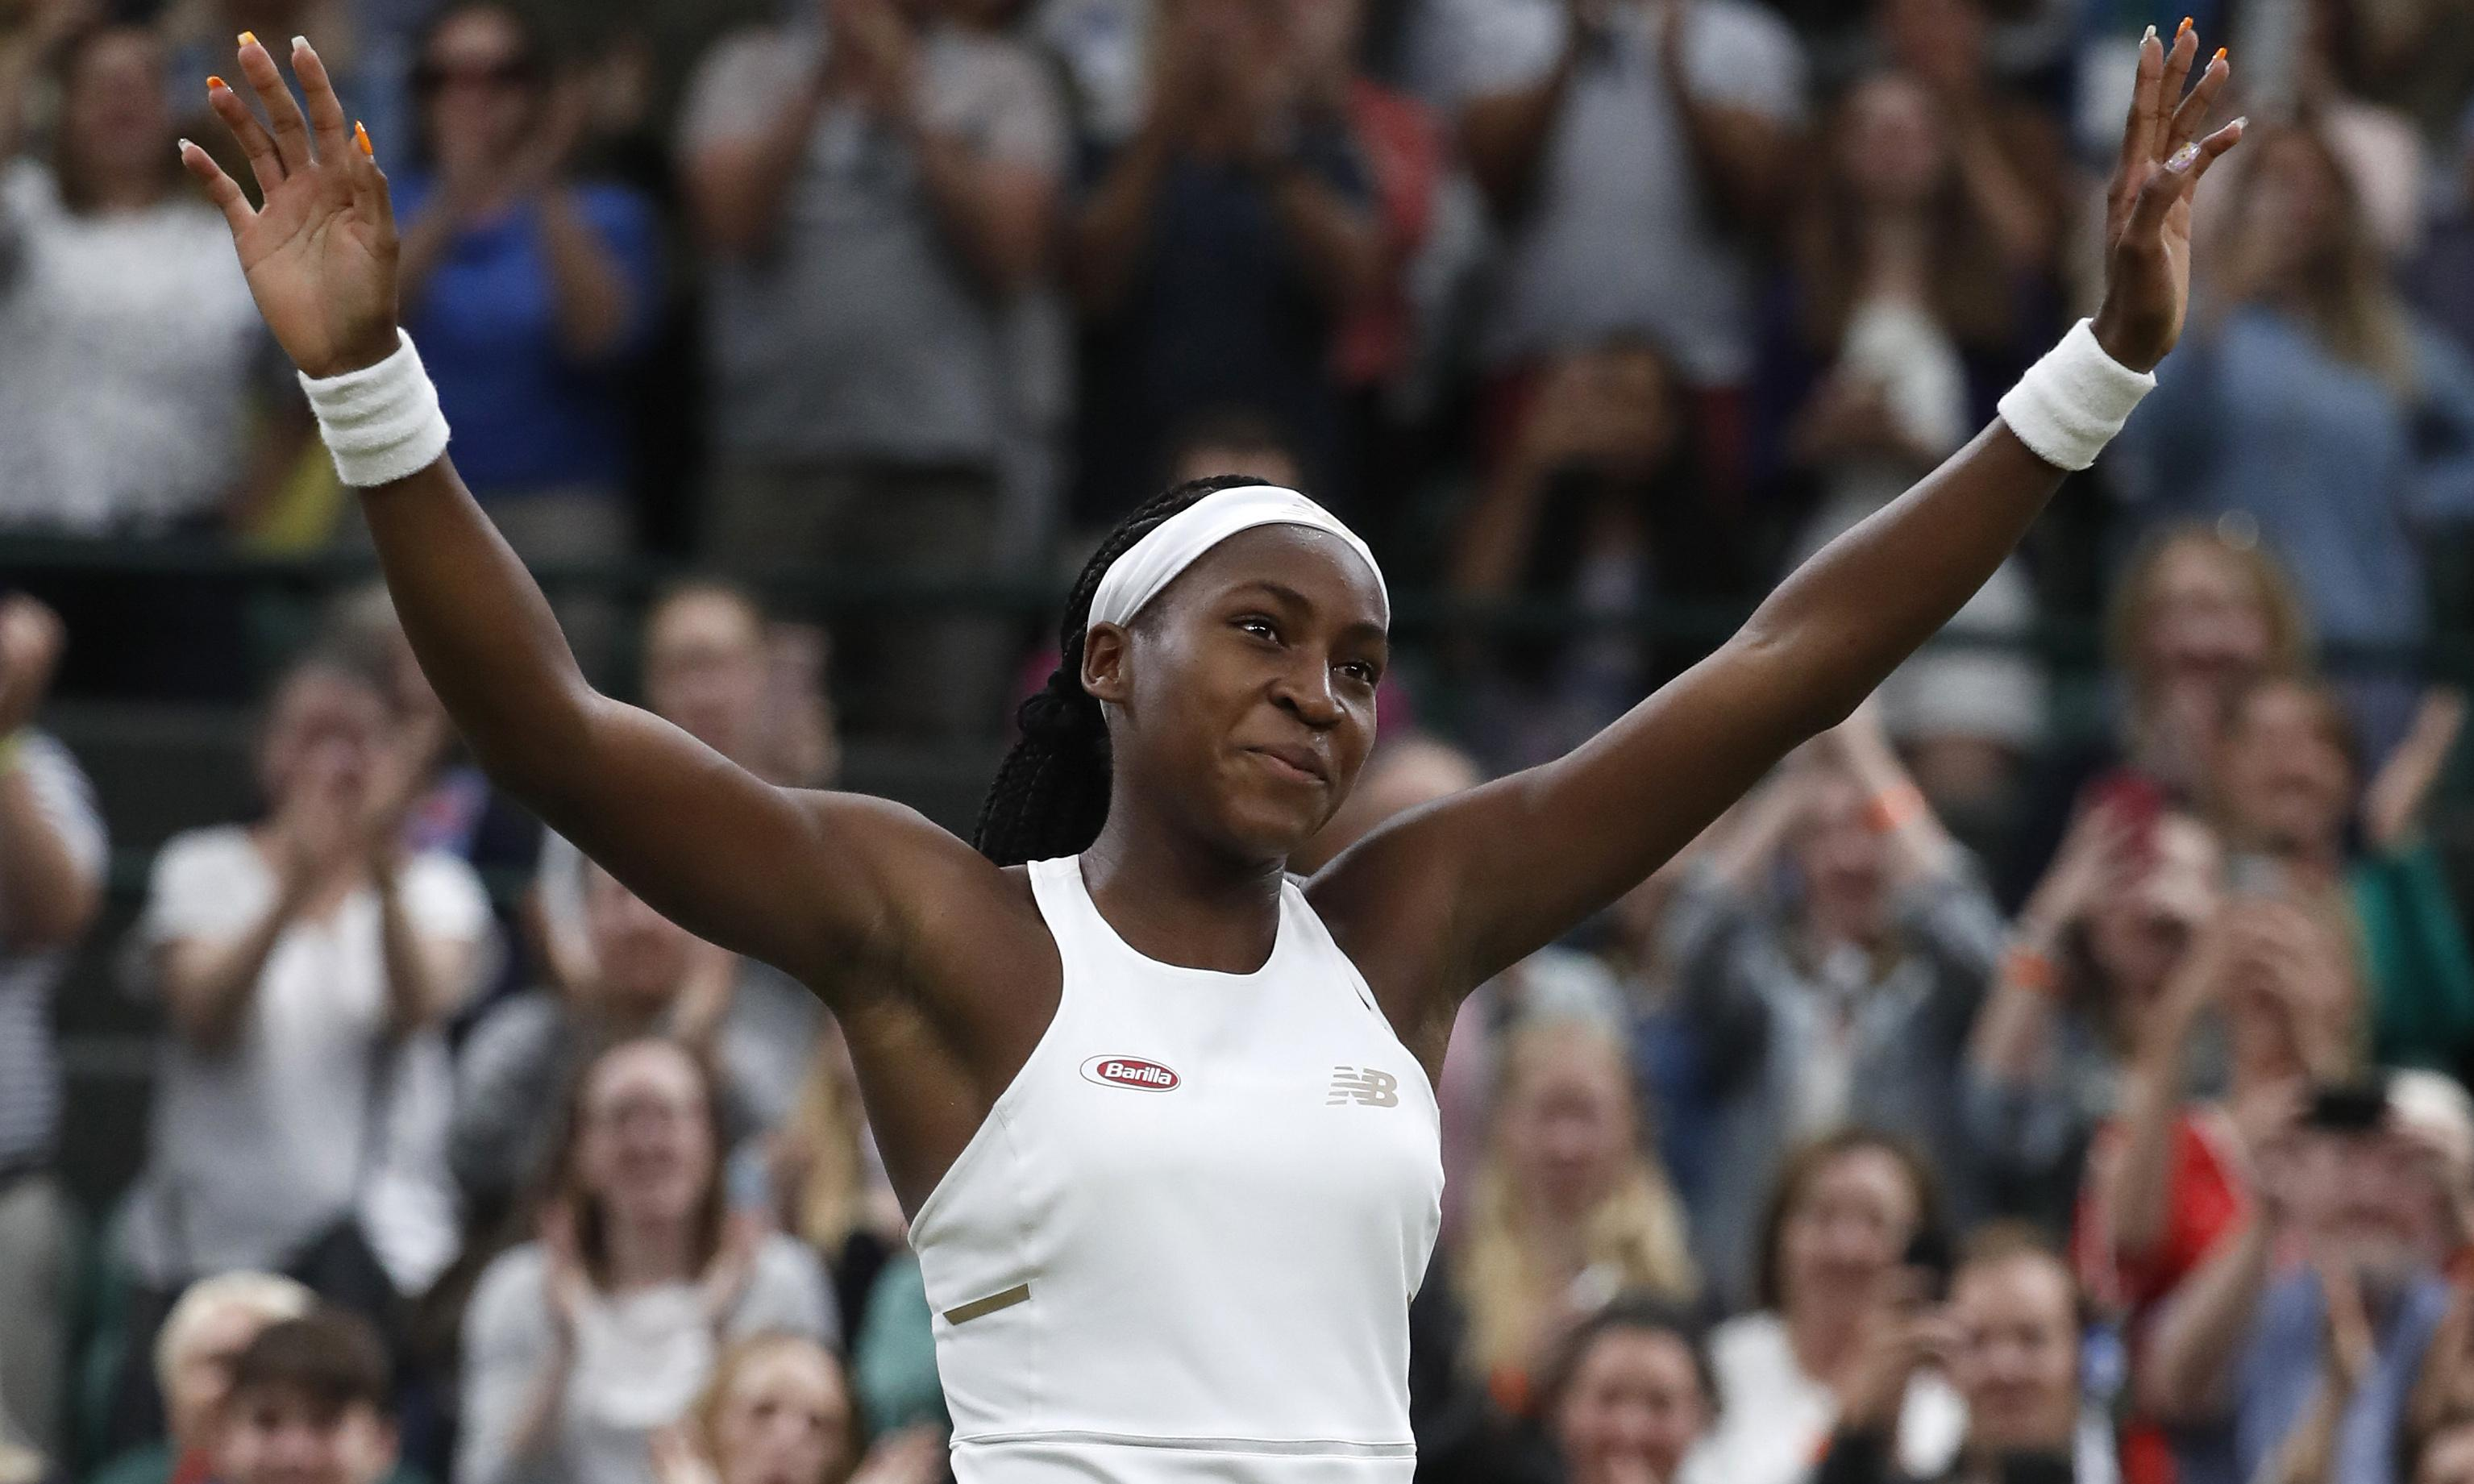 Fitness to finesse: the reasons behind Coco Gauff's stunning Wimbledon rise